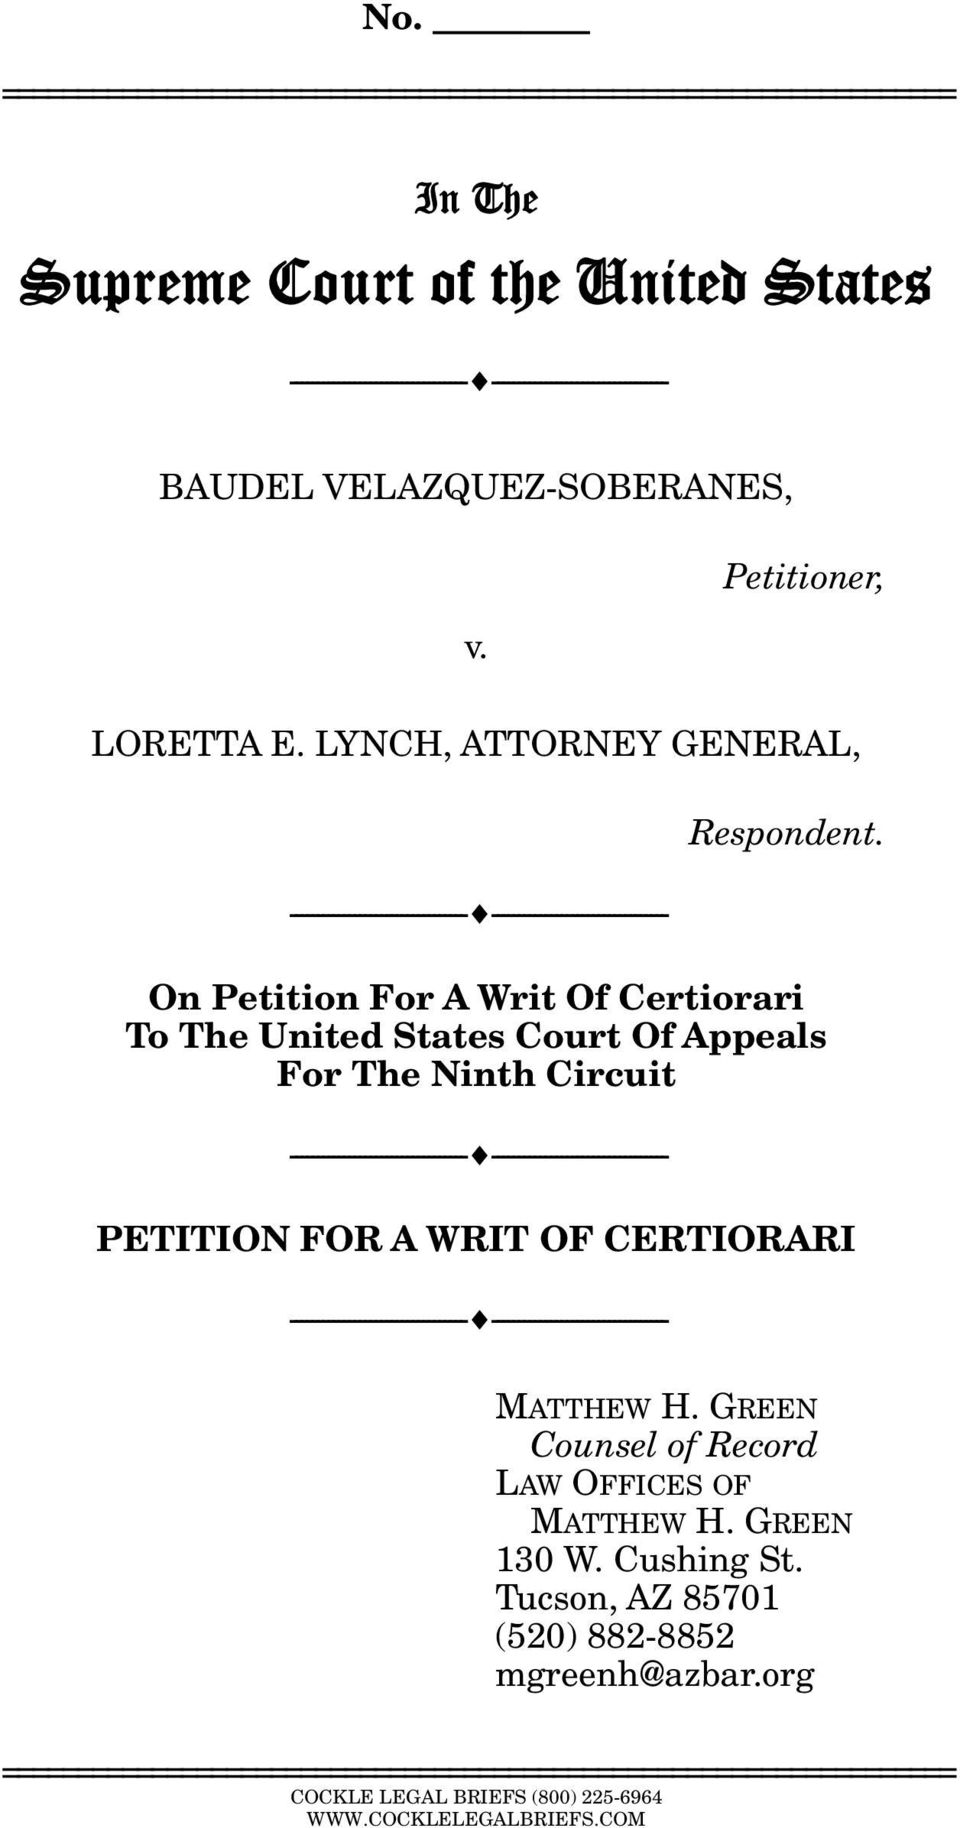 On Petition For A Writ Of Certiorari To The United States Court Of Appeals For The Ninth Circuit --------------------------------- --------------------------------- PETITION FOR A WRIT OF CERTIORARI